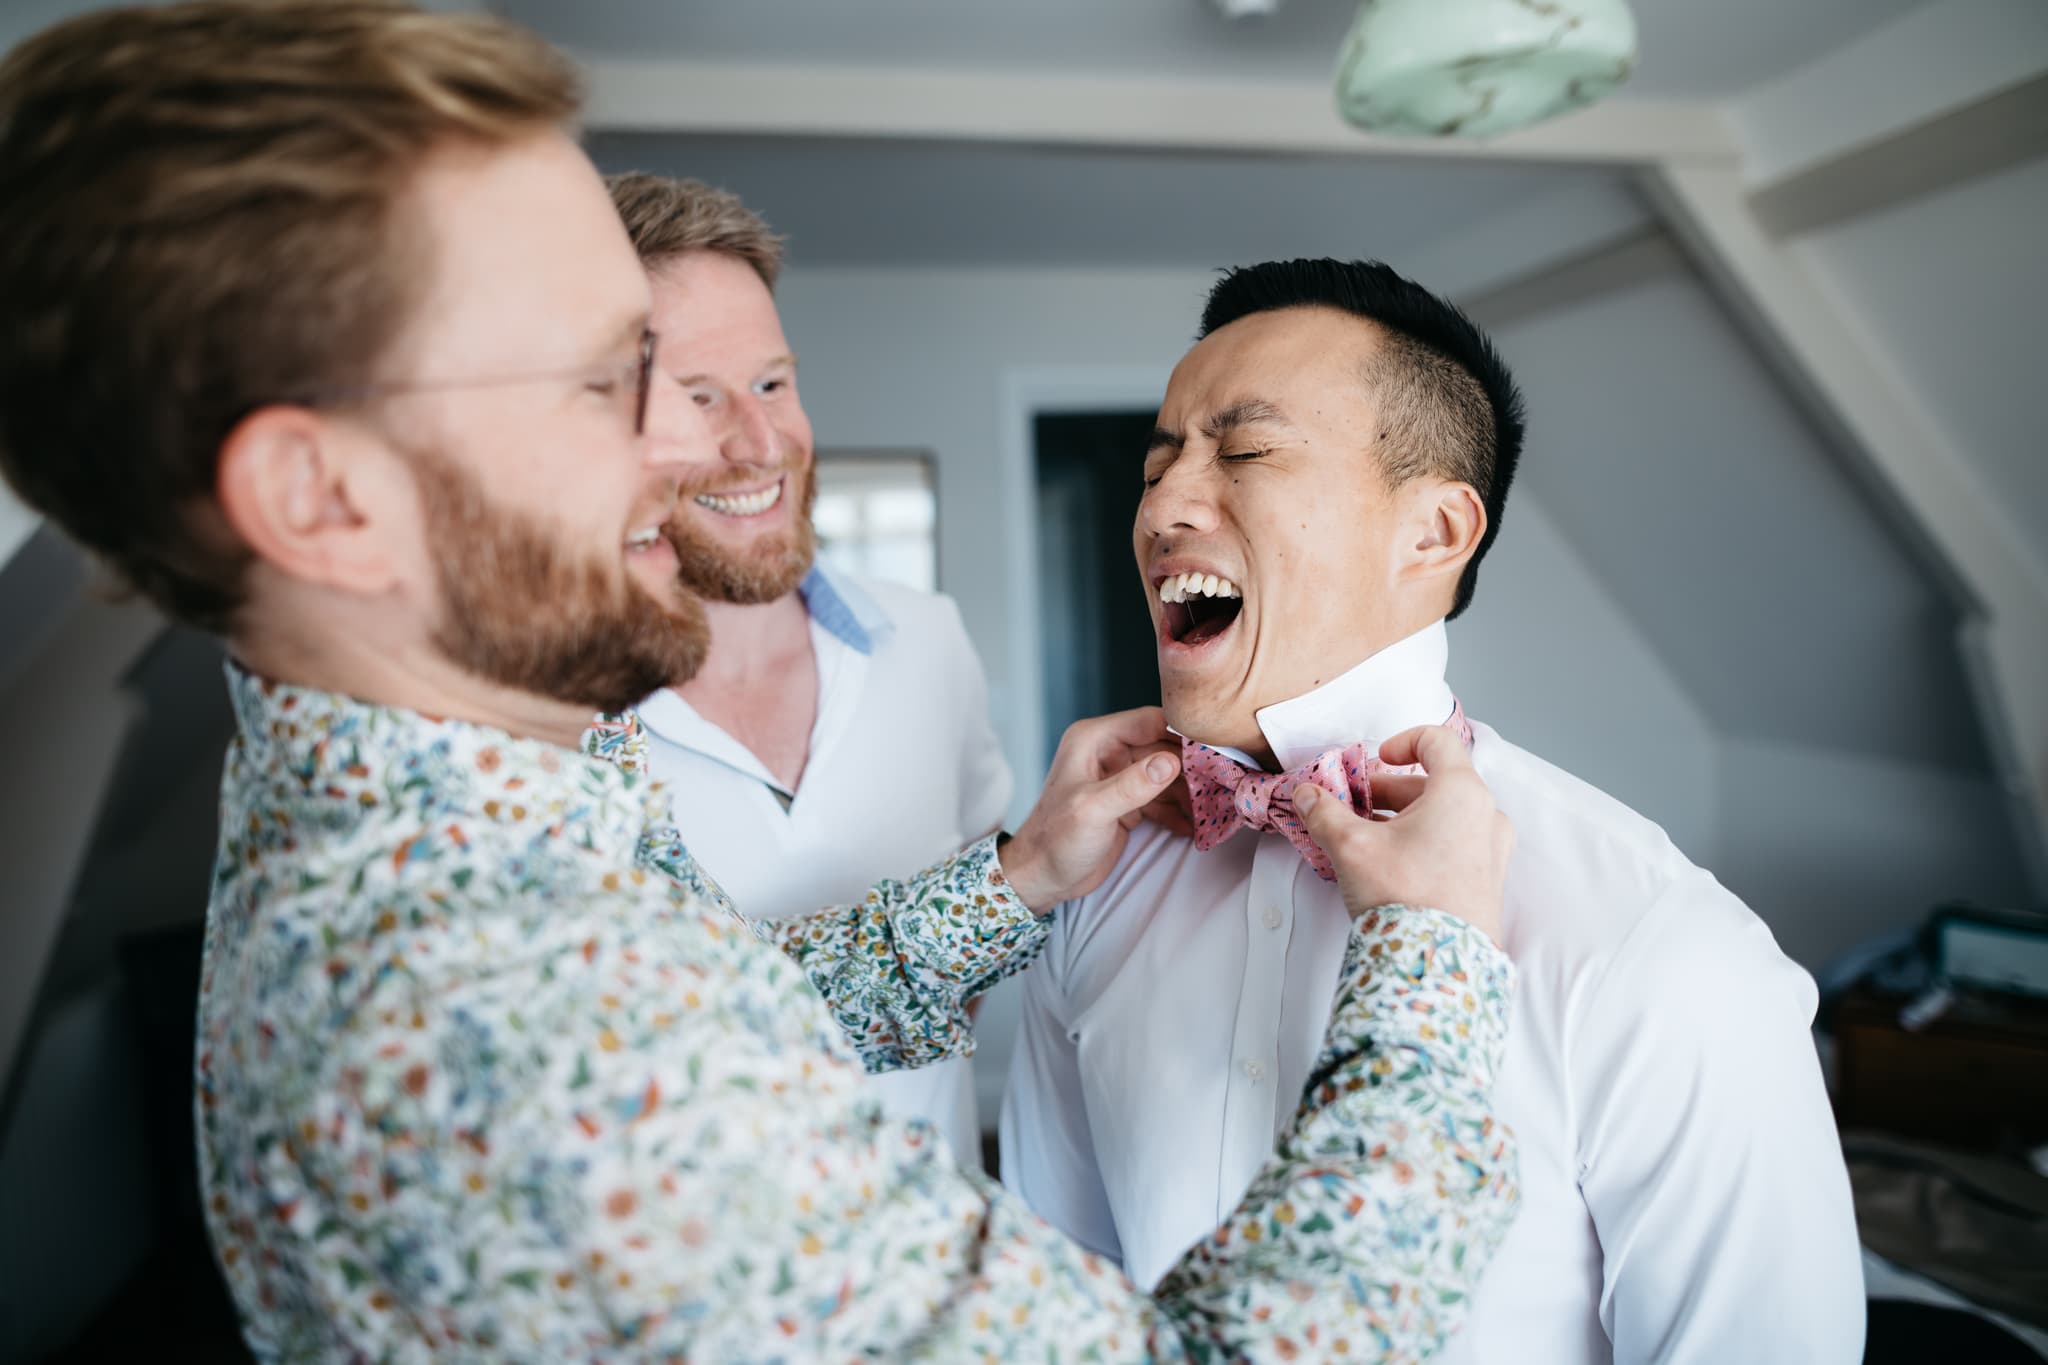 Gay couple getting ready for their wedding